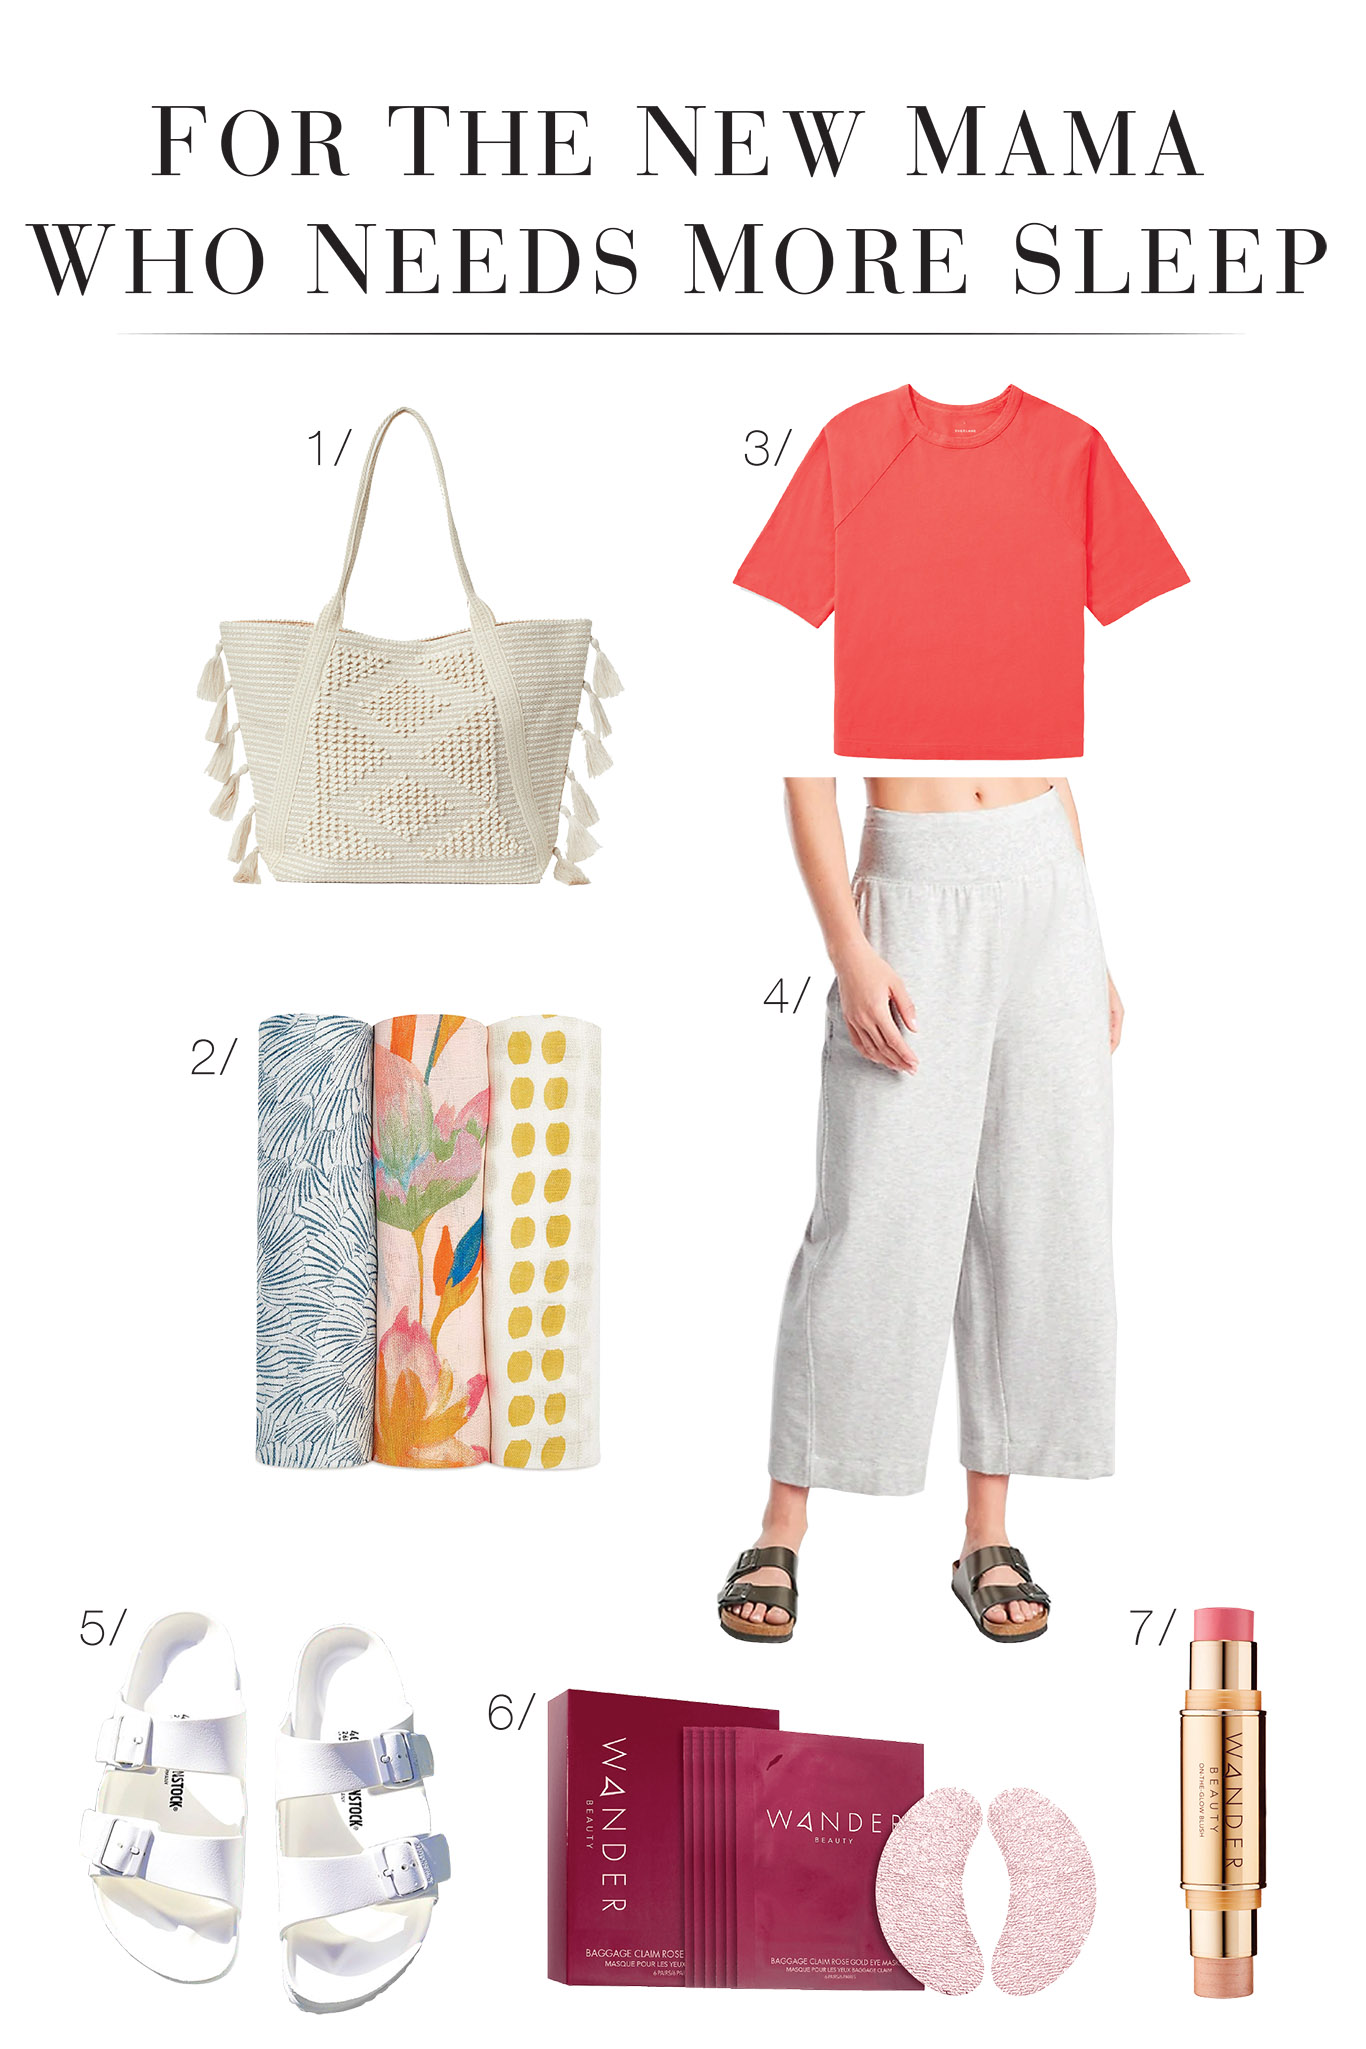 Let's take the guesswork out of postpartum styling w/ 3 nursing-friendly outfits, so new moms feel comfy + chic. Think wide-leg pants, nursing dresses & cute accessories.